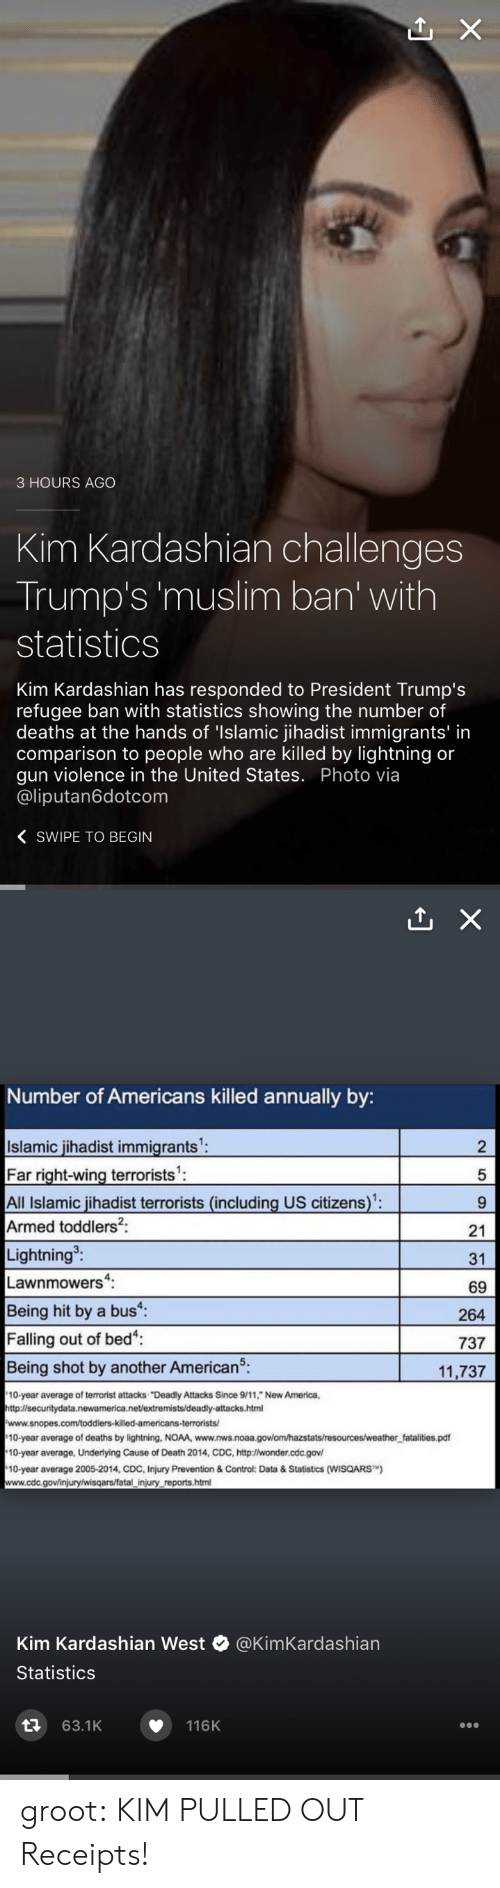 """Annually: 3 HOURS AGO  Kim Kardashian challenges  Trump's 'muslim ban' with  statistics  Kim Kardashian has responded to President Trump's  refugee ban with statistics showing the number of  deaths at the hands of 'Islamic jihadist immigrants' in  comparison to people who are killed by lightning or  gun violence in the United States. Photo via  @liputan6dotcom  〈 SWIPE TO BEGIN   Number of Americans killed annually by:  Islamic jihadist immigrants  Far right-wing terrorists'  All Islamic jihadist terrorists (including US citizens):  Armed toddlers2:  Lightning  Lawnmowers:  Being hit by a bus  Falling out of bed  Being shot by another American5.  2  5  21  31  69  264  737  11,737  10-year average of terrorist attacks """"Deadly Attacks Since 9/11, New America,  http:l/securitydata.newamerica.net/extremists/deadly-attacks.html  10-year average of deaths by lightning, NOAA, www.nws.noaa.govlom/hazstats/resources/weather fatalities.pdf  10-year average, Underlying Cause of Death 2014, CDC, http:lwonder.cdc.gov  10-year average 2005-2014, CDC, Injury Prevention & Control: Data&Statistics (WISQARS)  www.cdc.gov/injury/wisqars/fatal injury reports.html  Kim Kardashian West @KimKardashian  Statistics  63.1K  116K groot: KIM PULLED OUT Receipts!"""